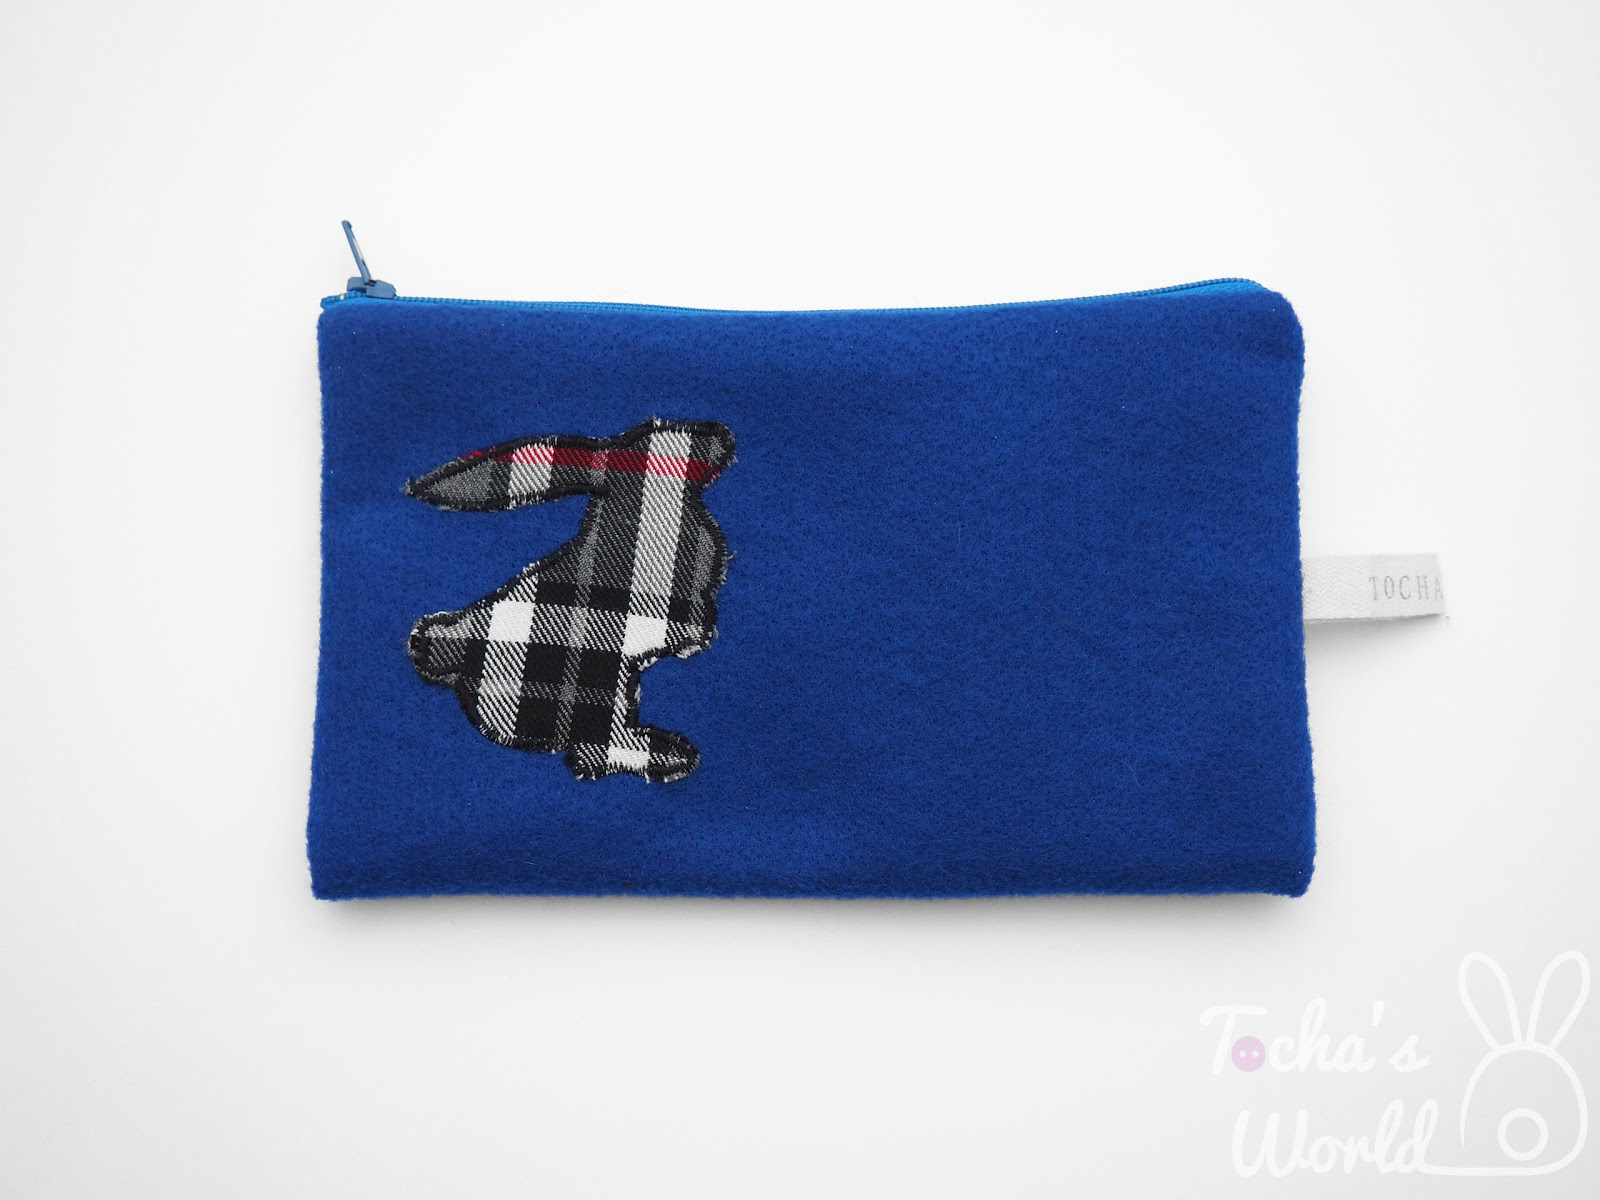 eco felt, vegan felt, recycled, pencil case, cosmetic bag, purse, scottie dog, rabbit, westie, tartan, Tocha's World